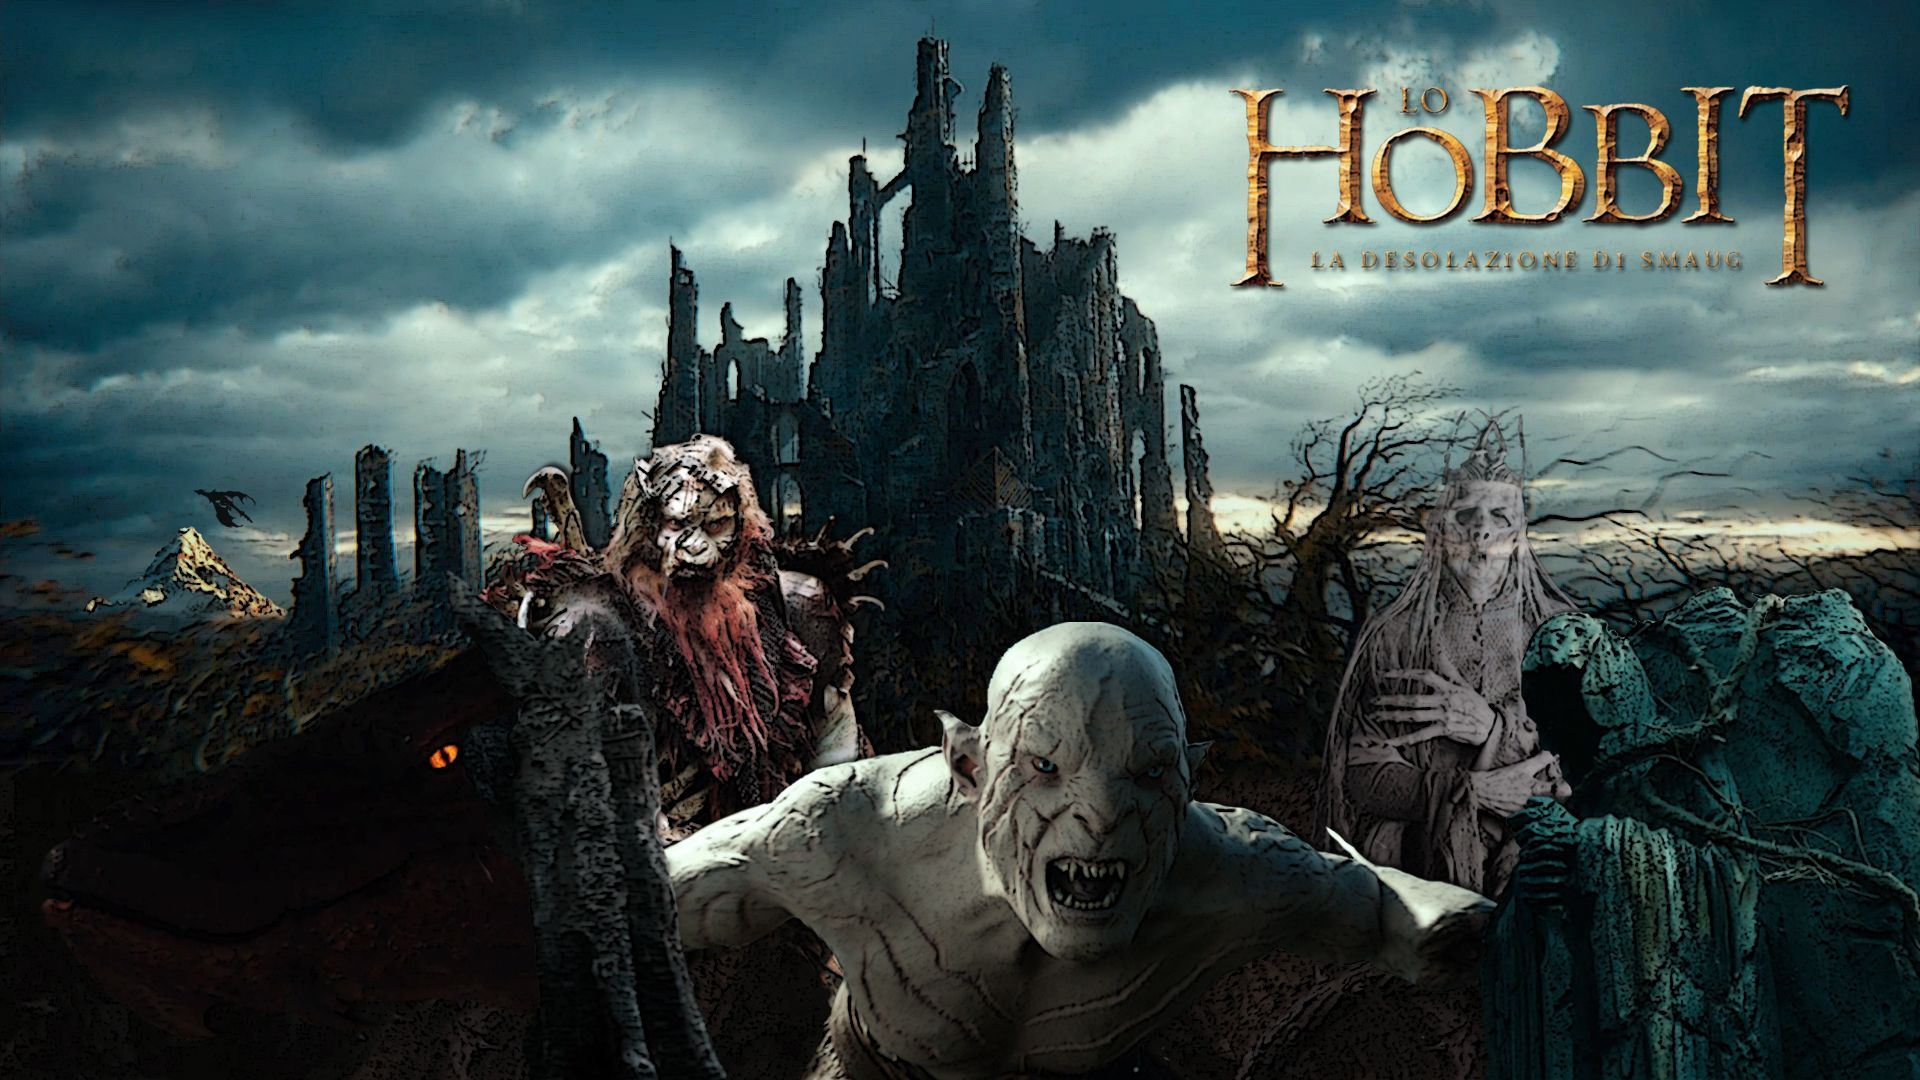 The Hobbit An Unexpected Journey Free the Hobbit HD Wallpapers